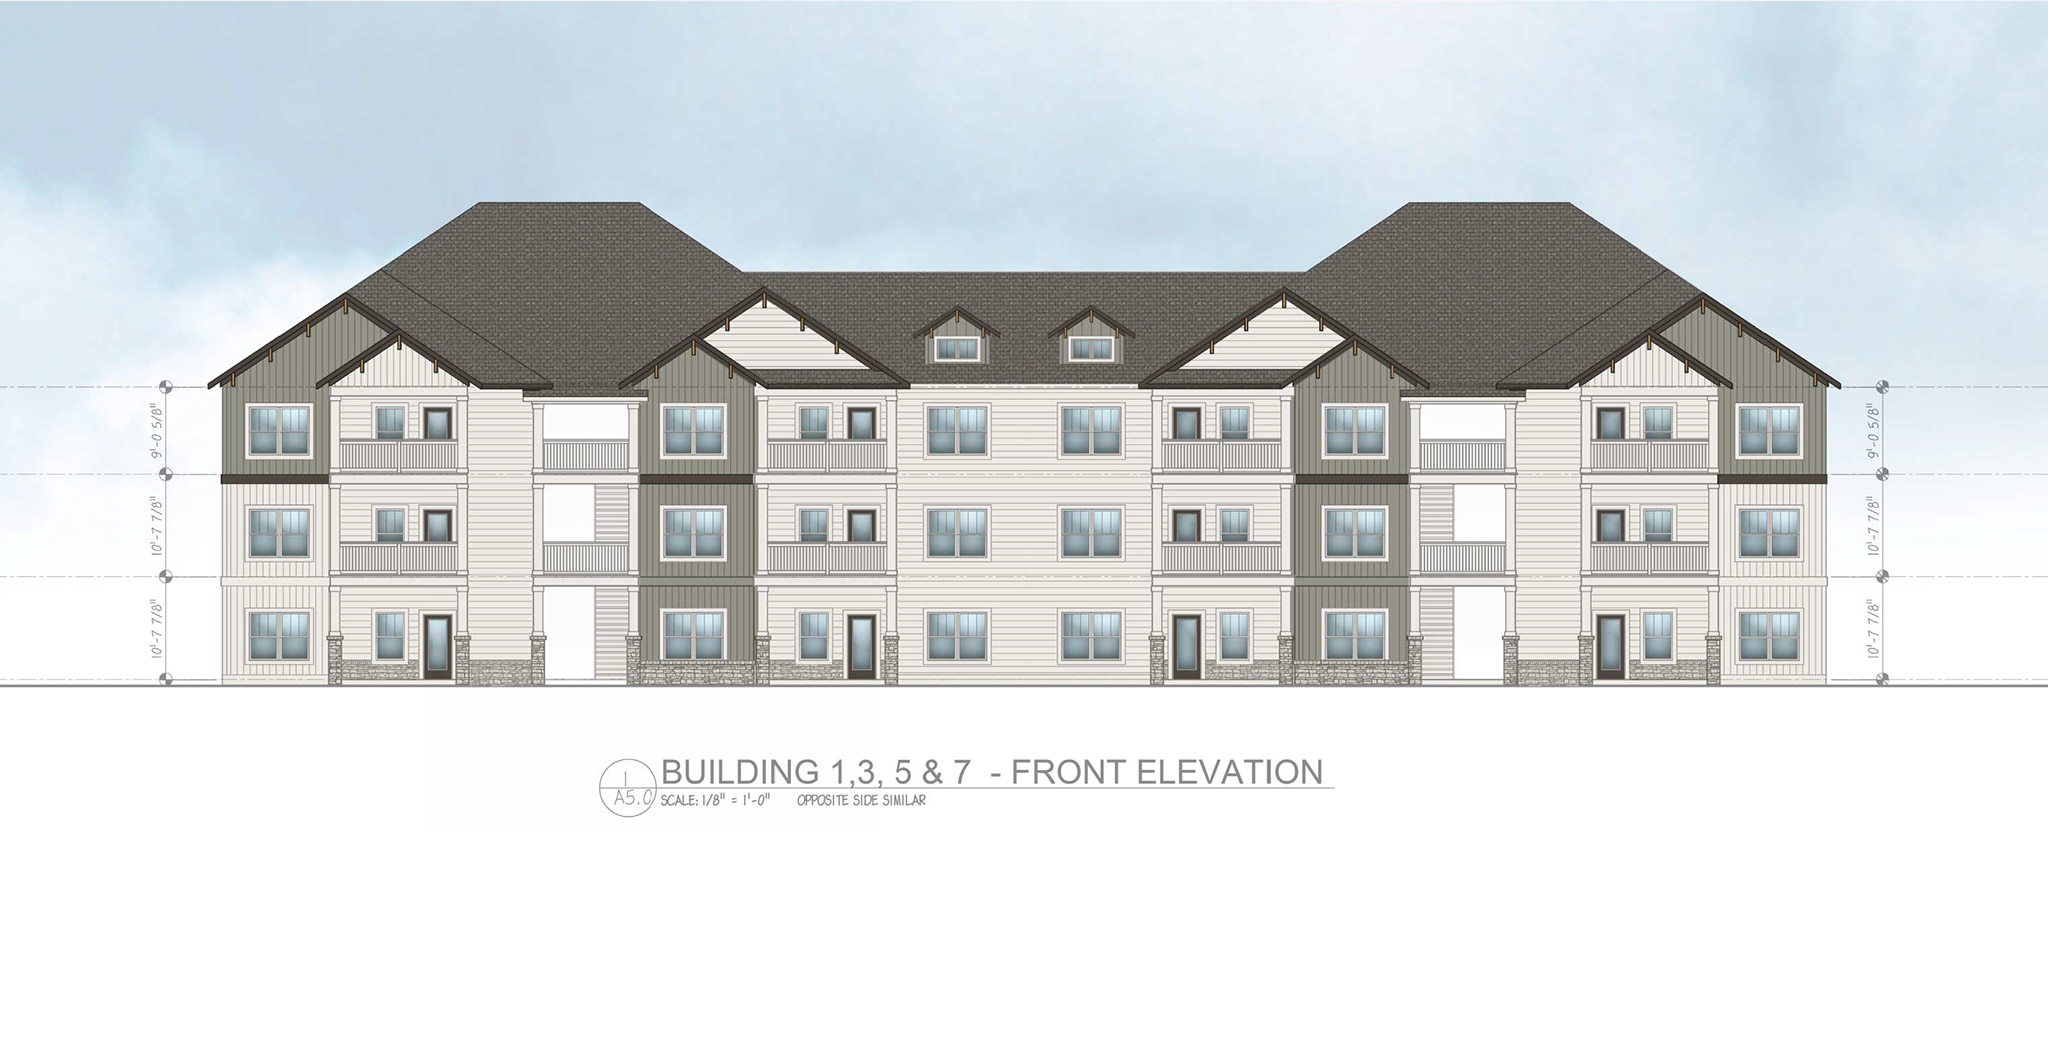 image of diagram of an apartment complex with height measurements